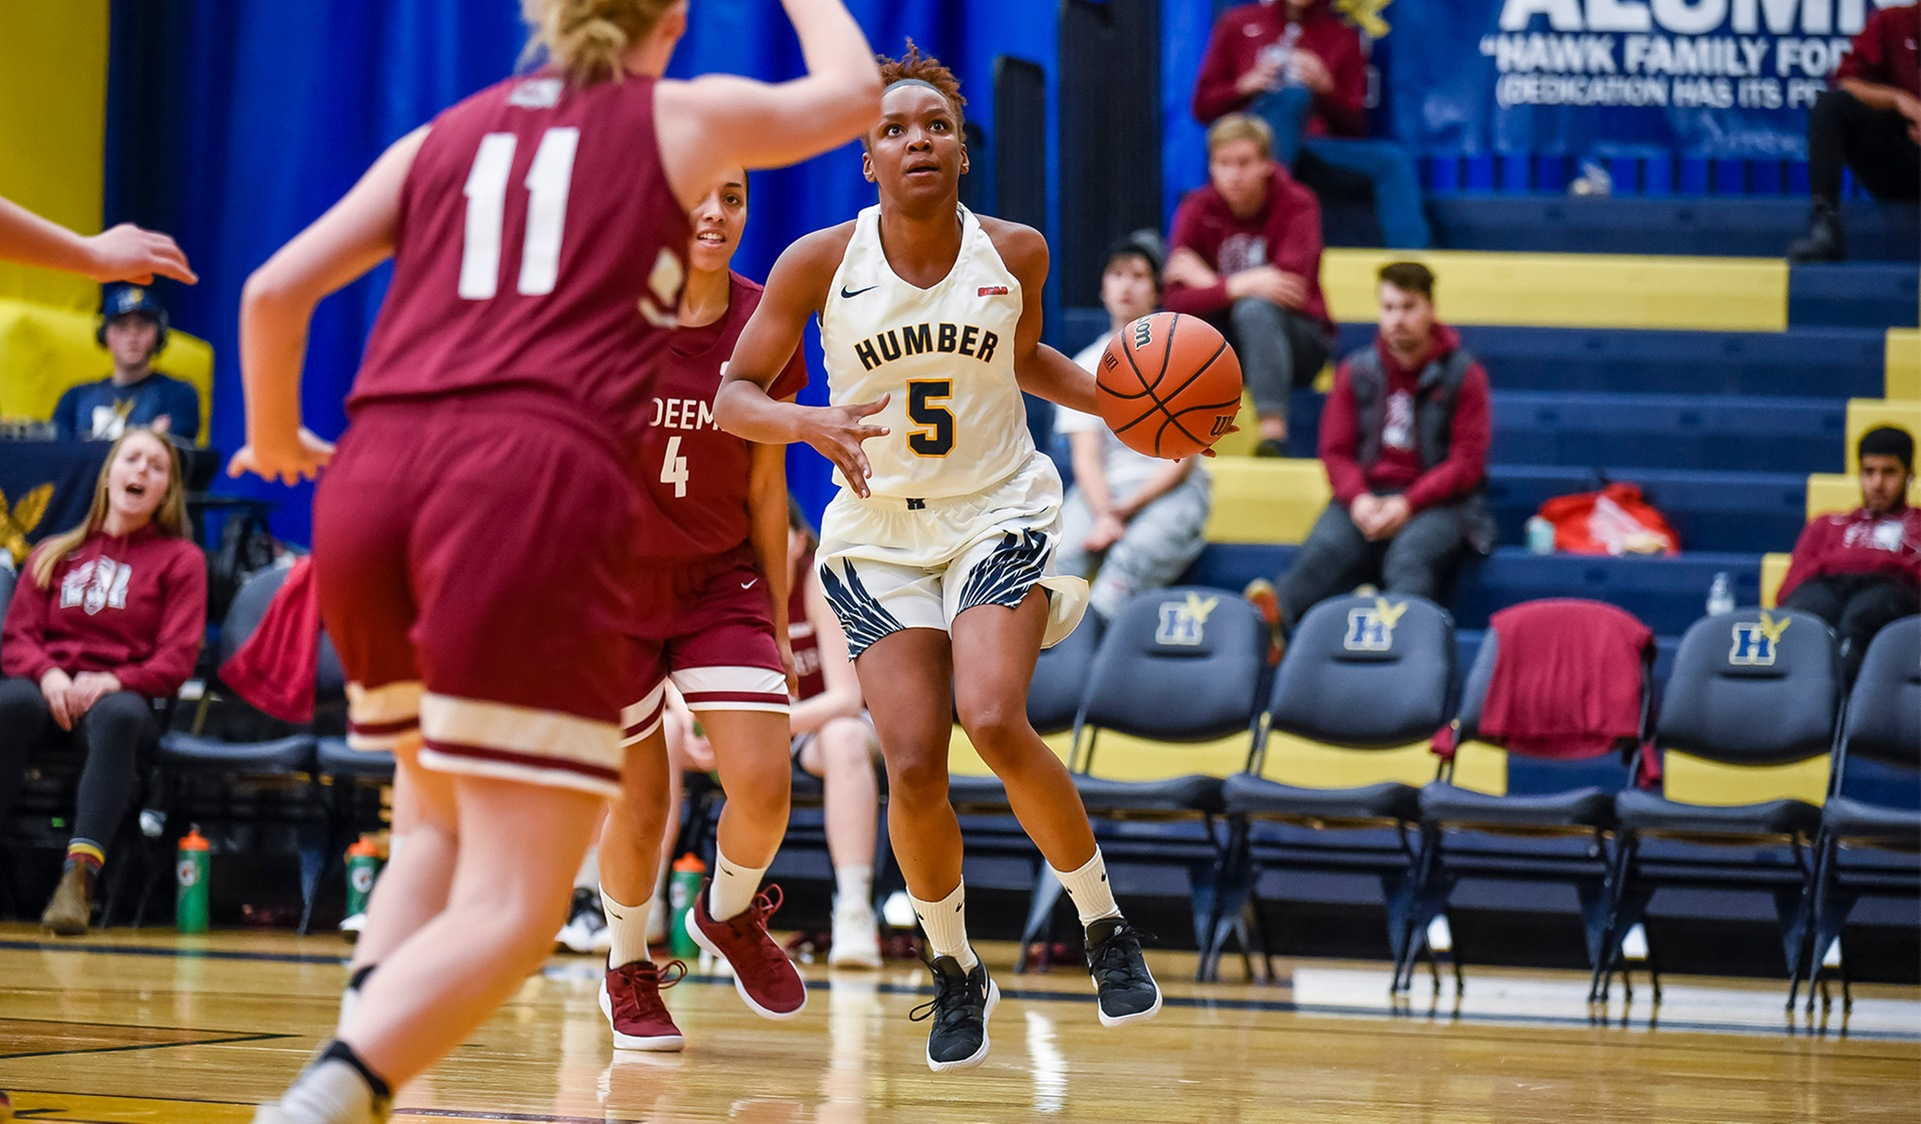 No. 11 WOMEN'S BASKETBALL EXTENDS STREAK TO SEVEN WITH WIN OVER REDEEMER